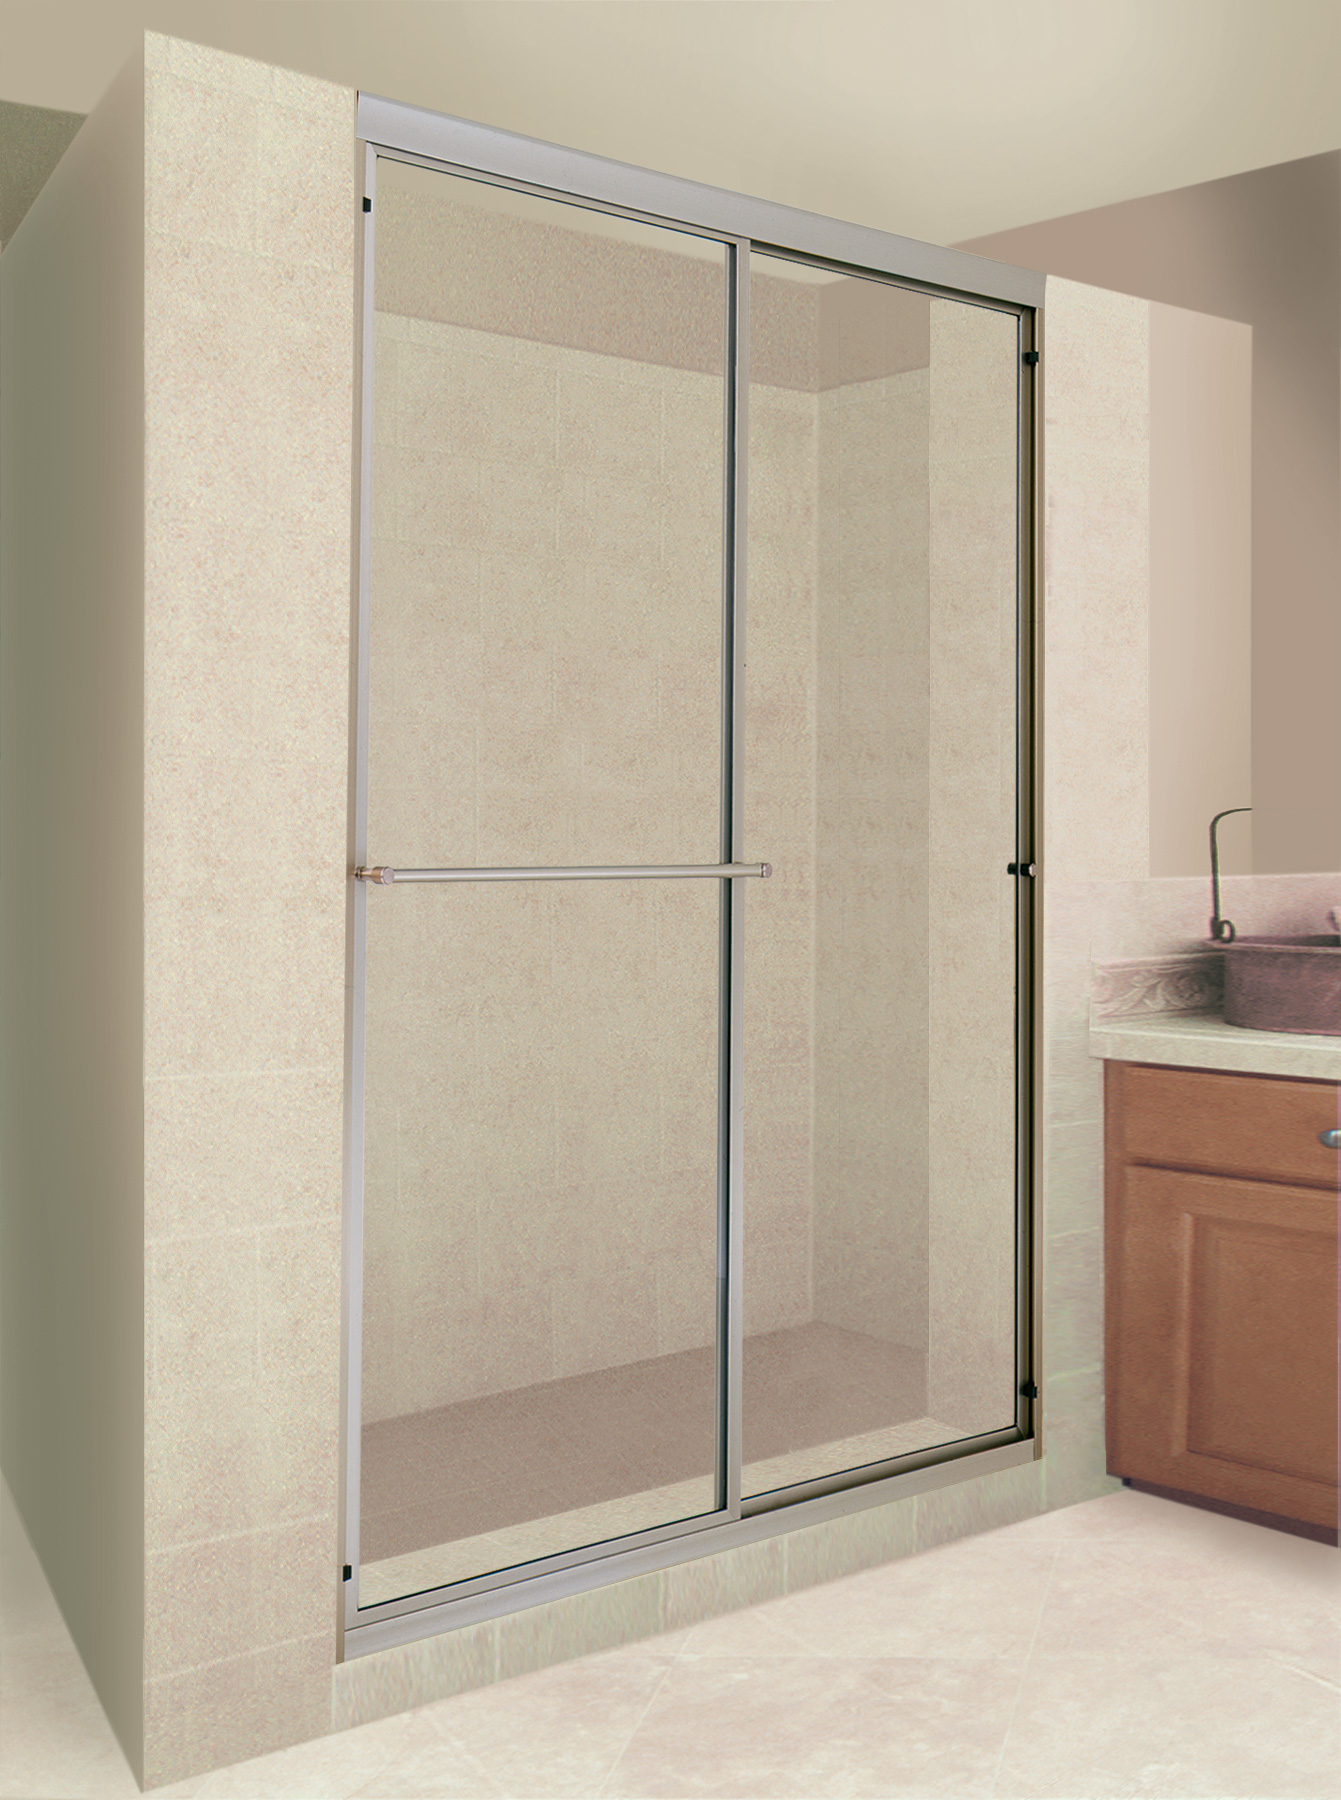 North Star Glass and Windows - Shower doors gallery